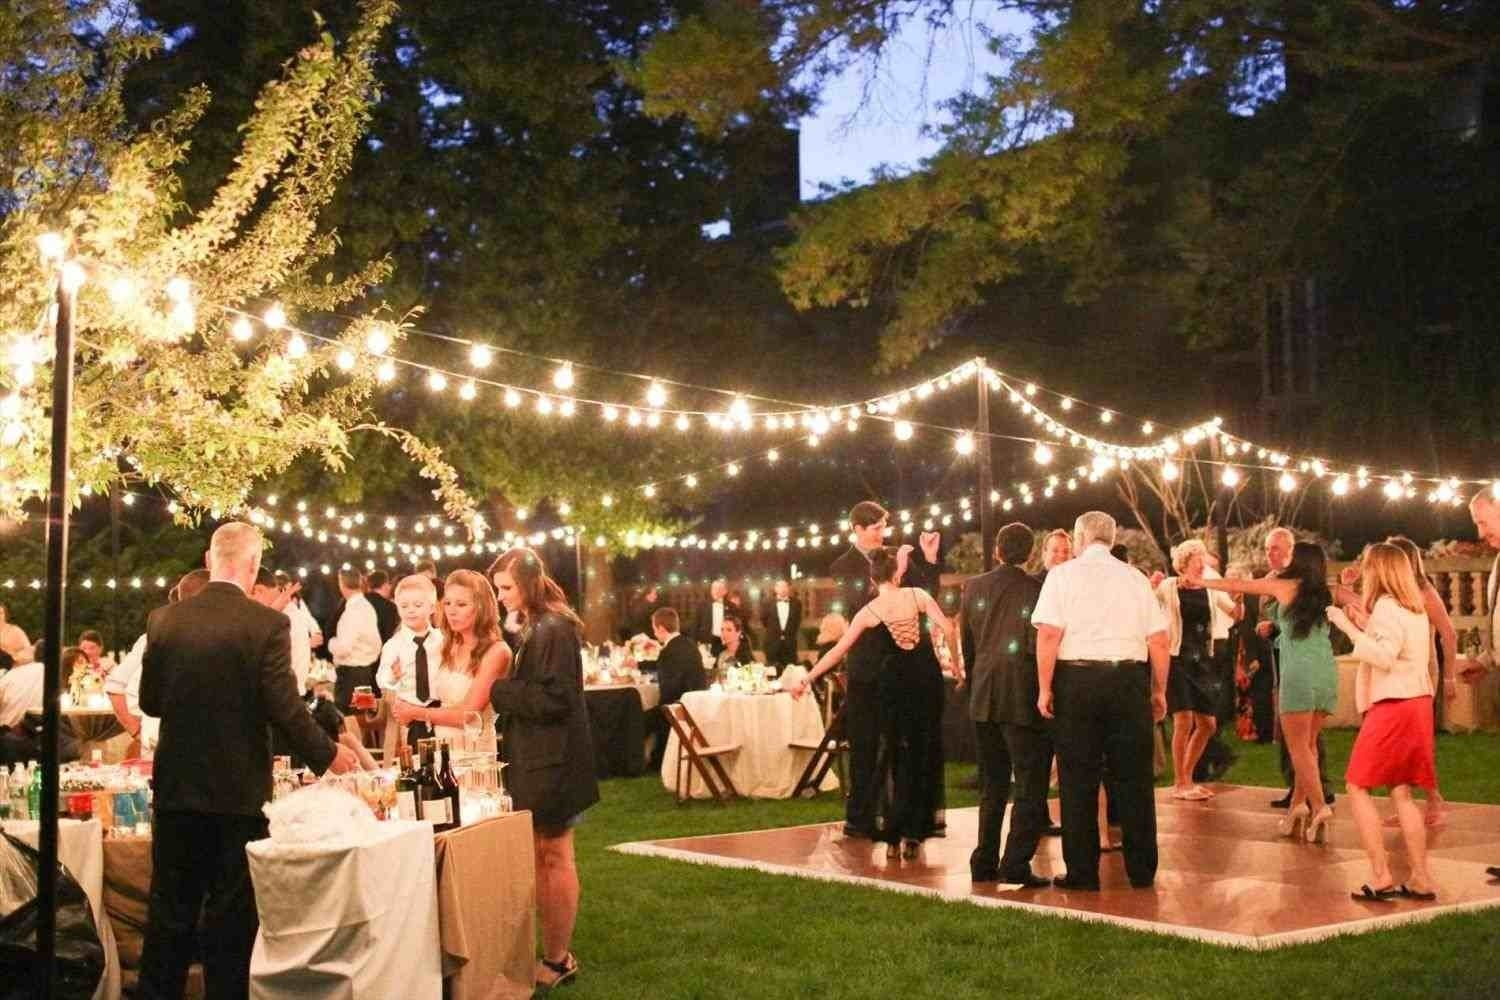 10 Lovely Country Wedding Ideas For Summer luxury country wedding ideas for summer outdoor on a budget love to 2020